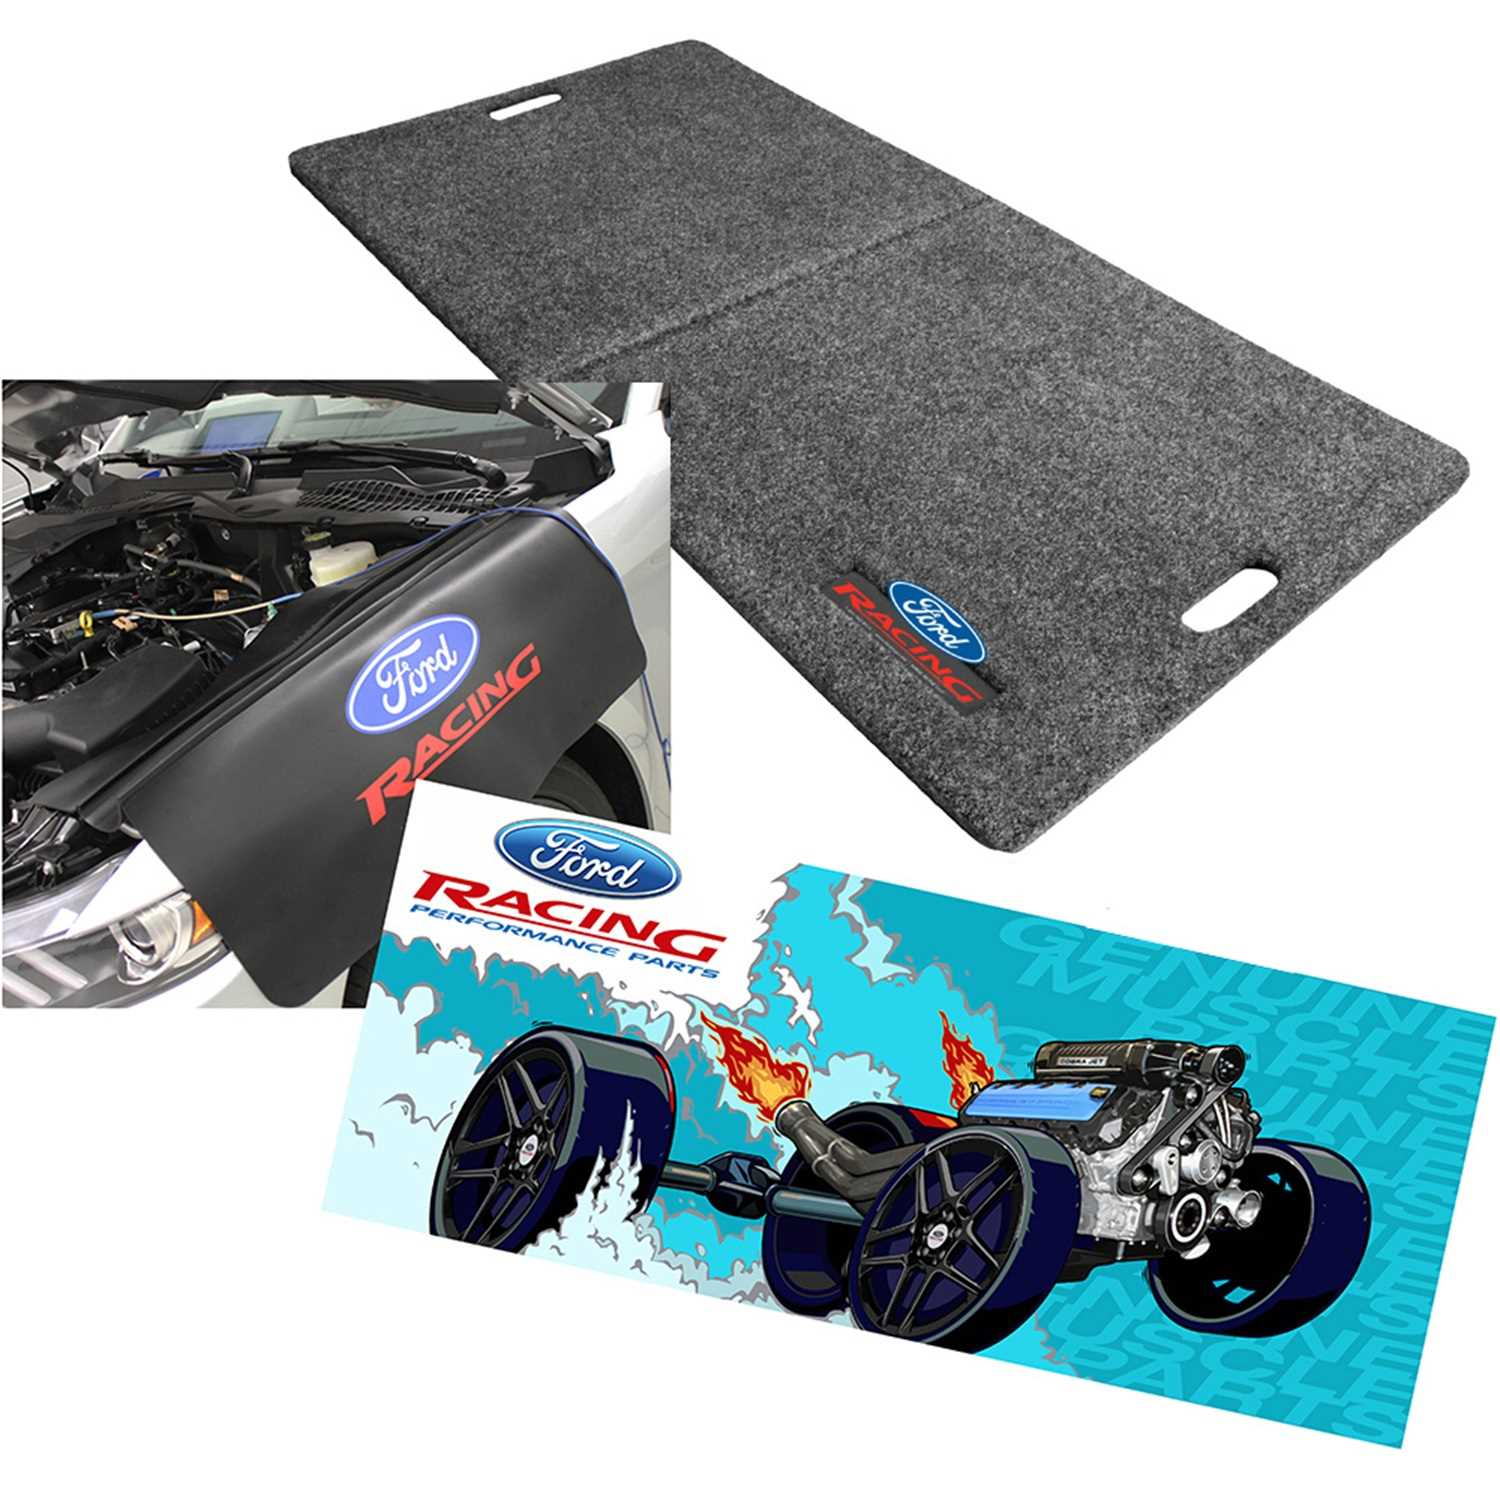 Ford performance parts track pack m 9000 1822tp m 9000 1822tp